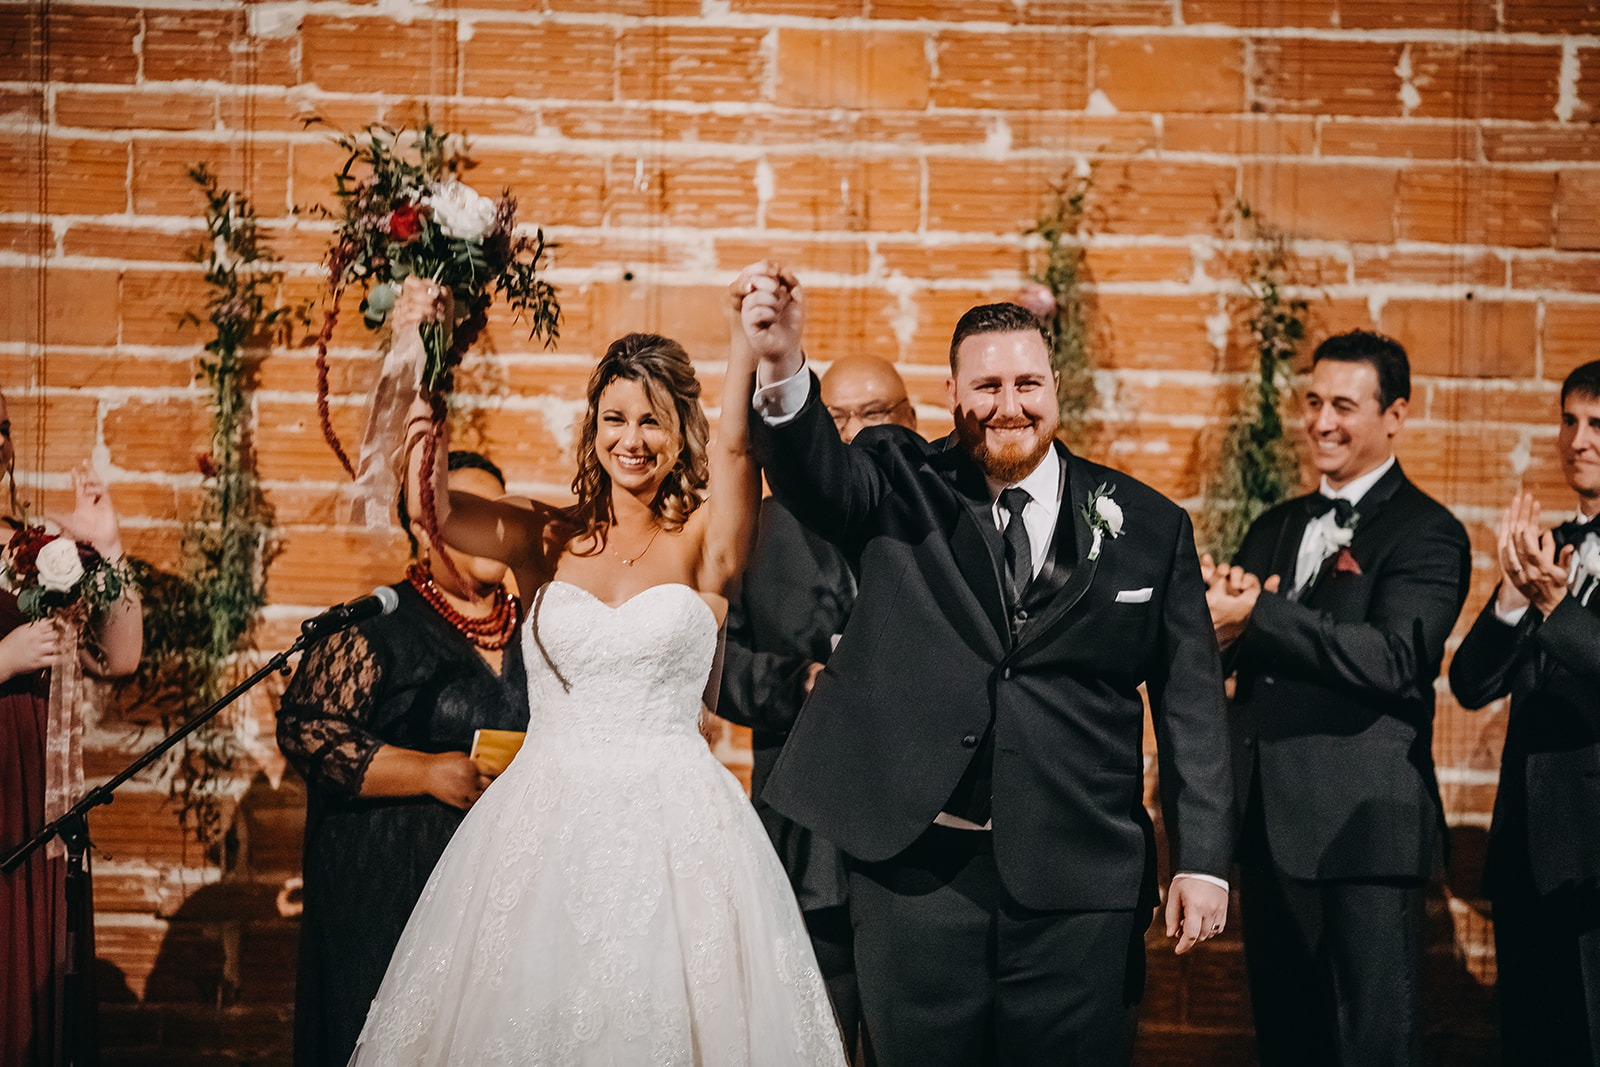 Urban Downtown St Pete Wedding with brick wall ceremony backdrop and string lights | Historic Tampa Bay wedding venue NOVA 535